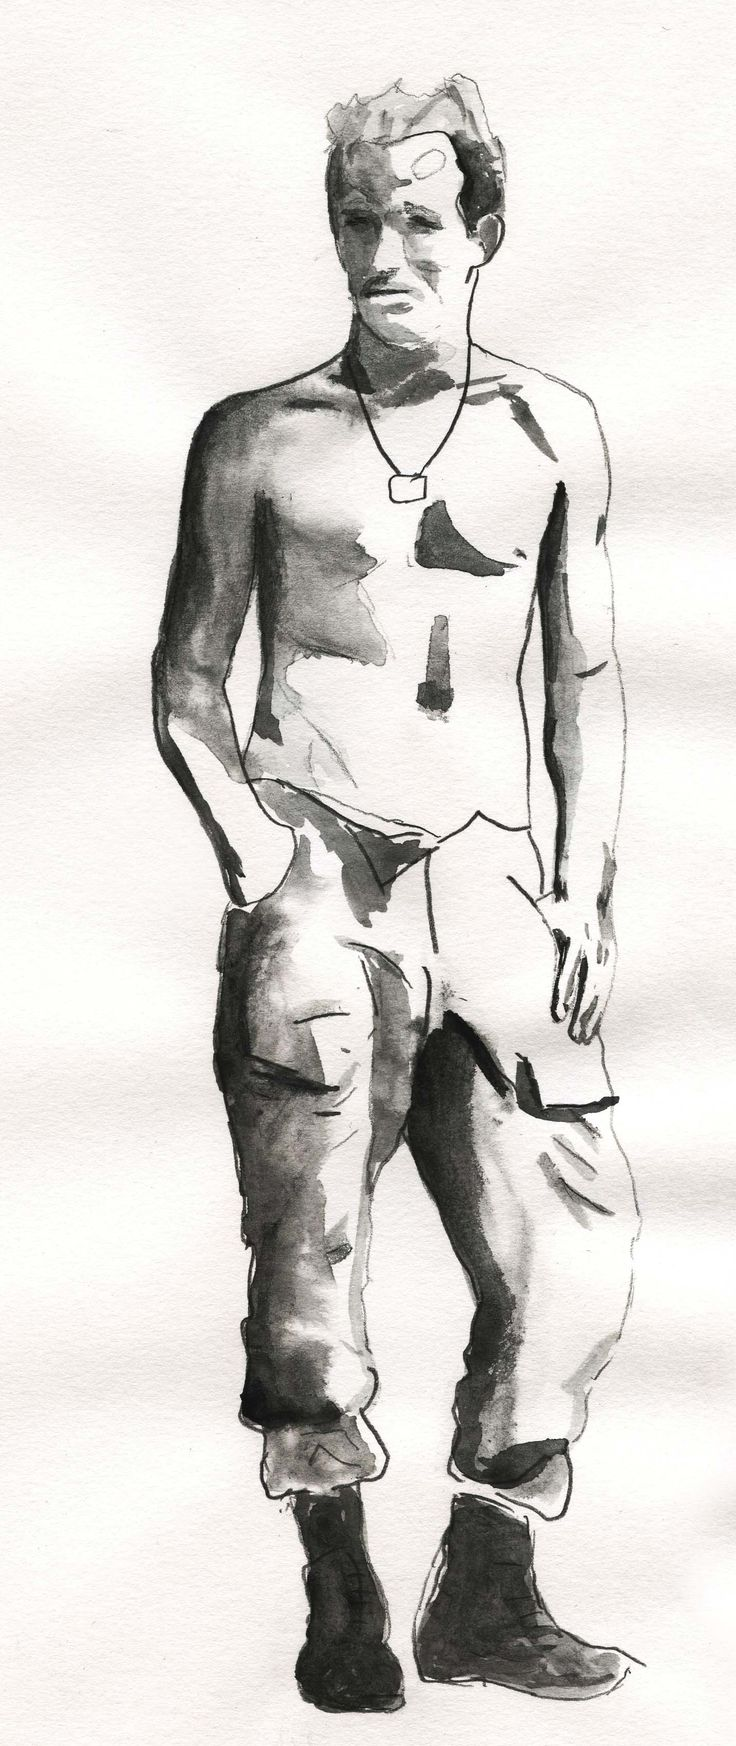 Ink and pencil sketch of photo.